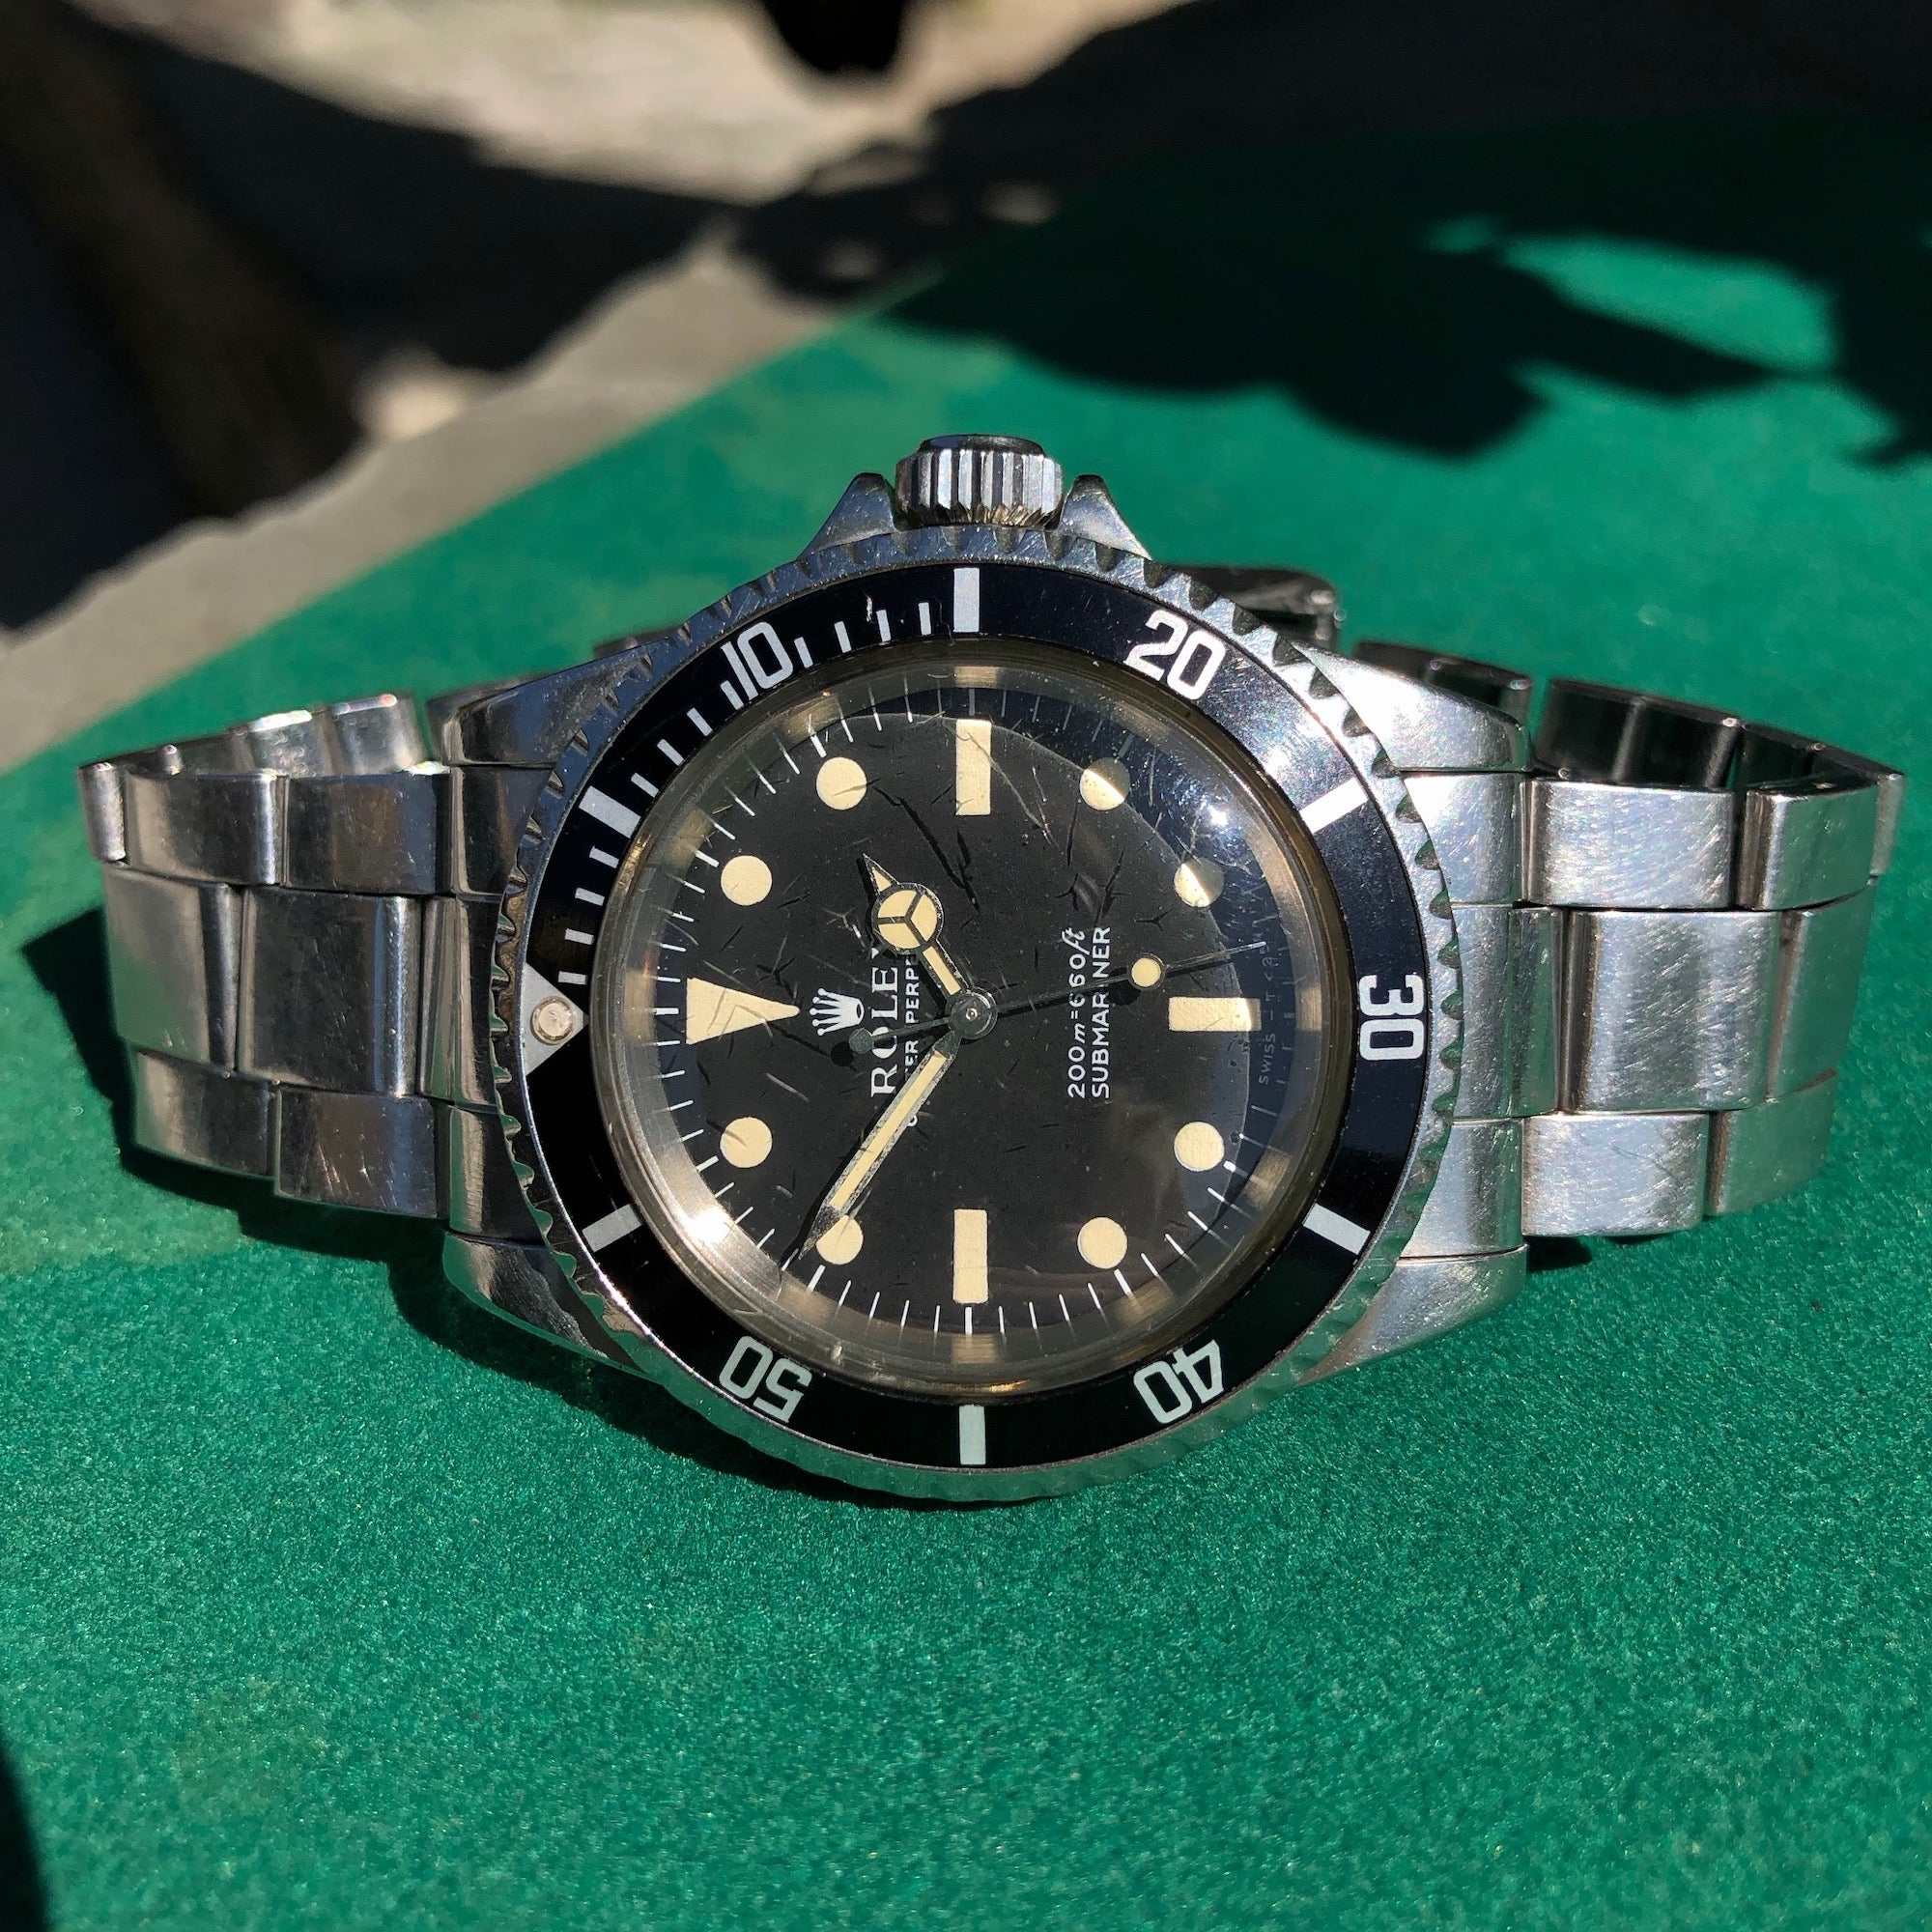 Vintage Rolex Submariner 5513 Meters Frist Dial Matte Black Wristwatch Circa 1967 - Hashtag Watch Company